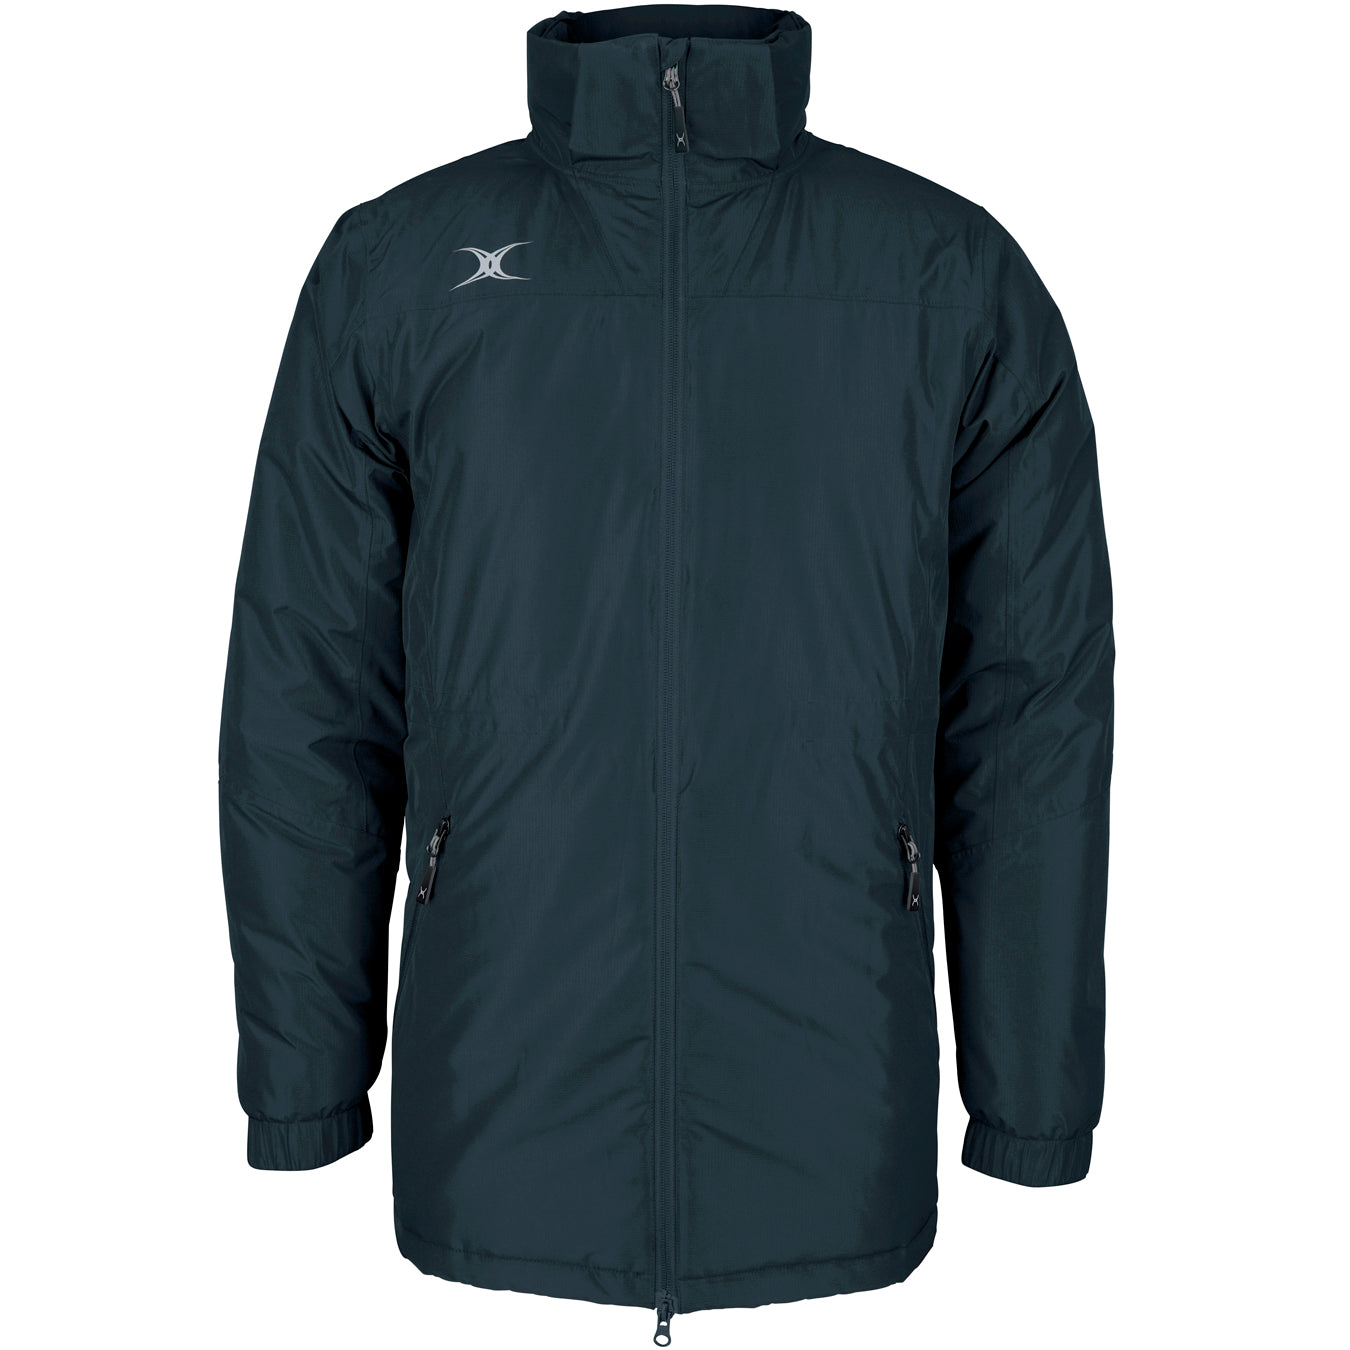 I.S.A Gilbert Pro All Weather Jacket